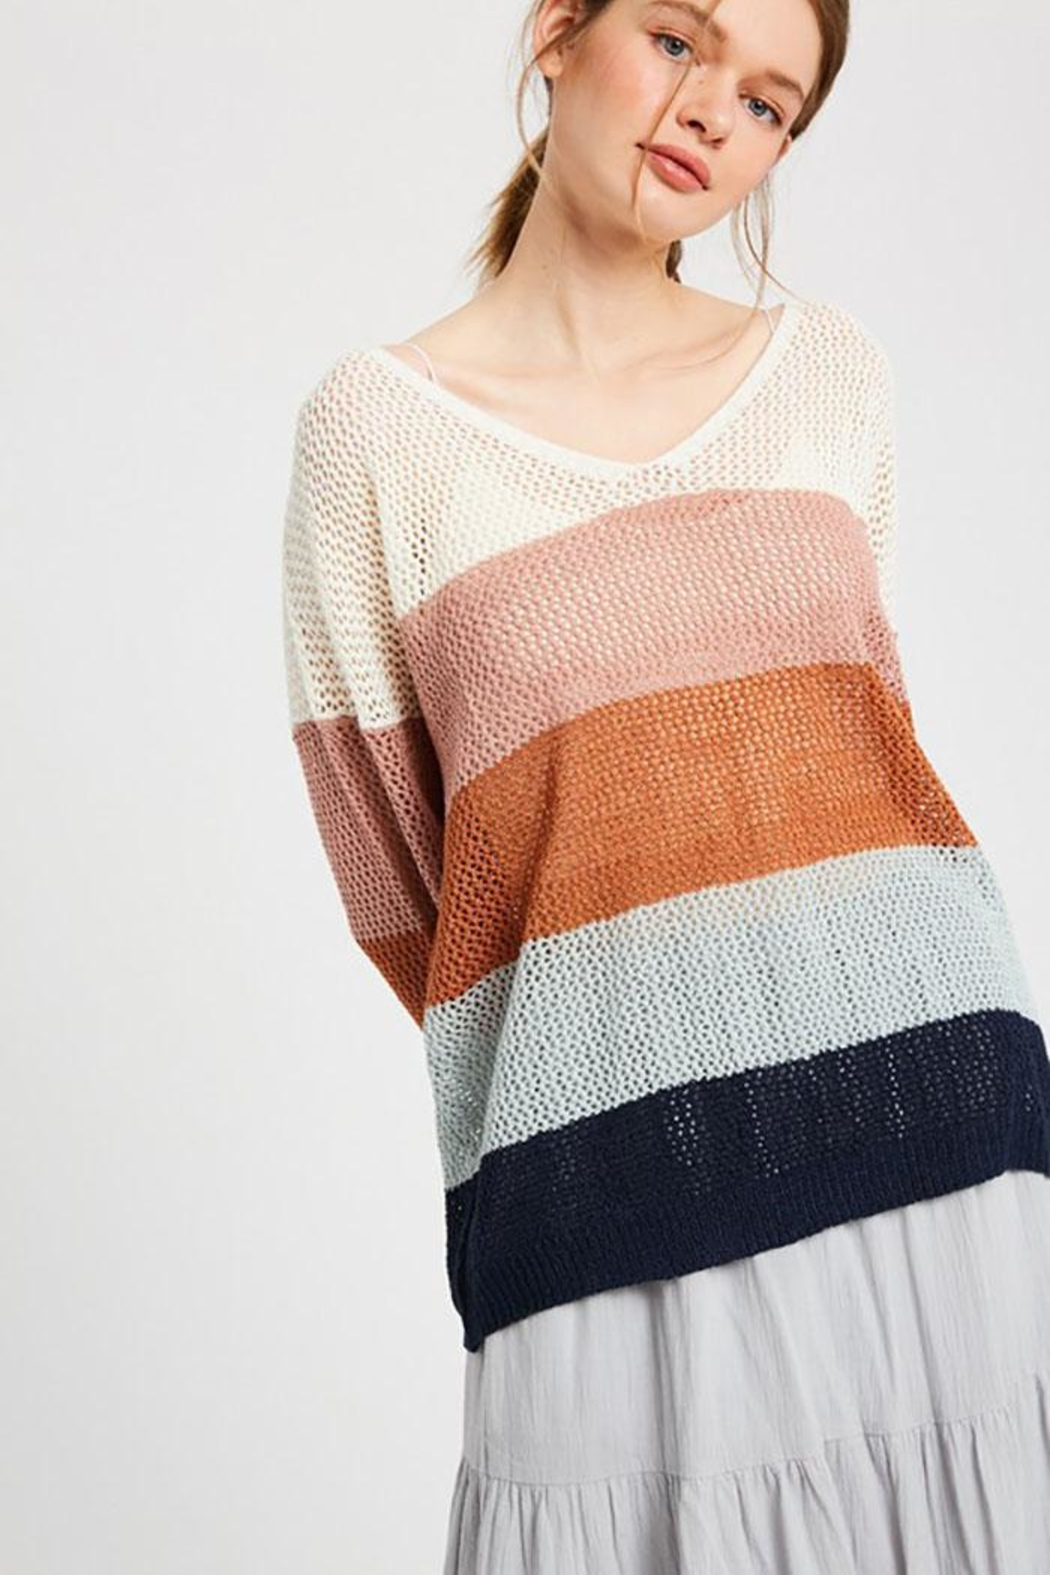 Wishlist Colorblock Loose Fit V Neck Lightweight Knit Sweater Pullover Top - Side Cropped Image